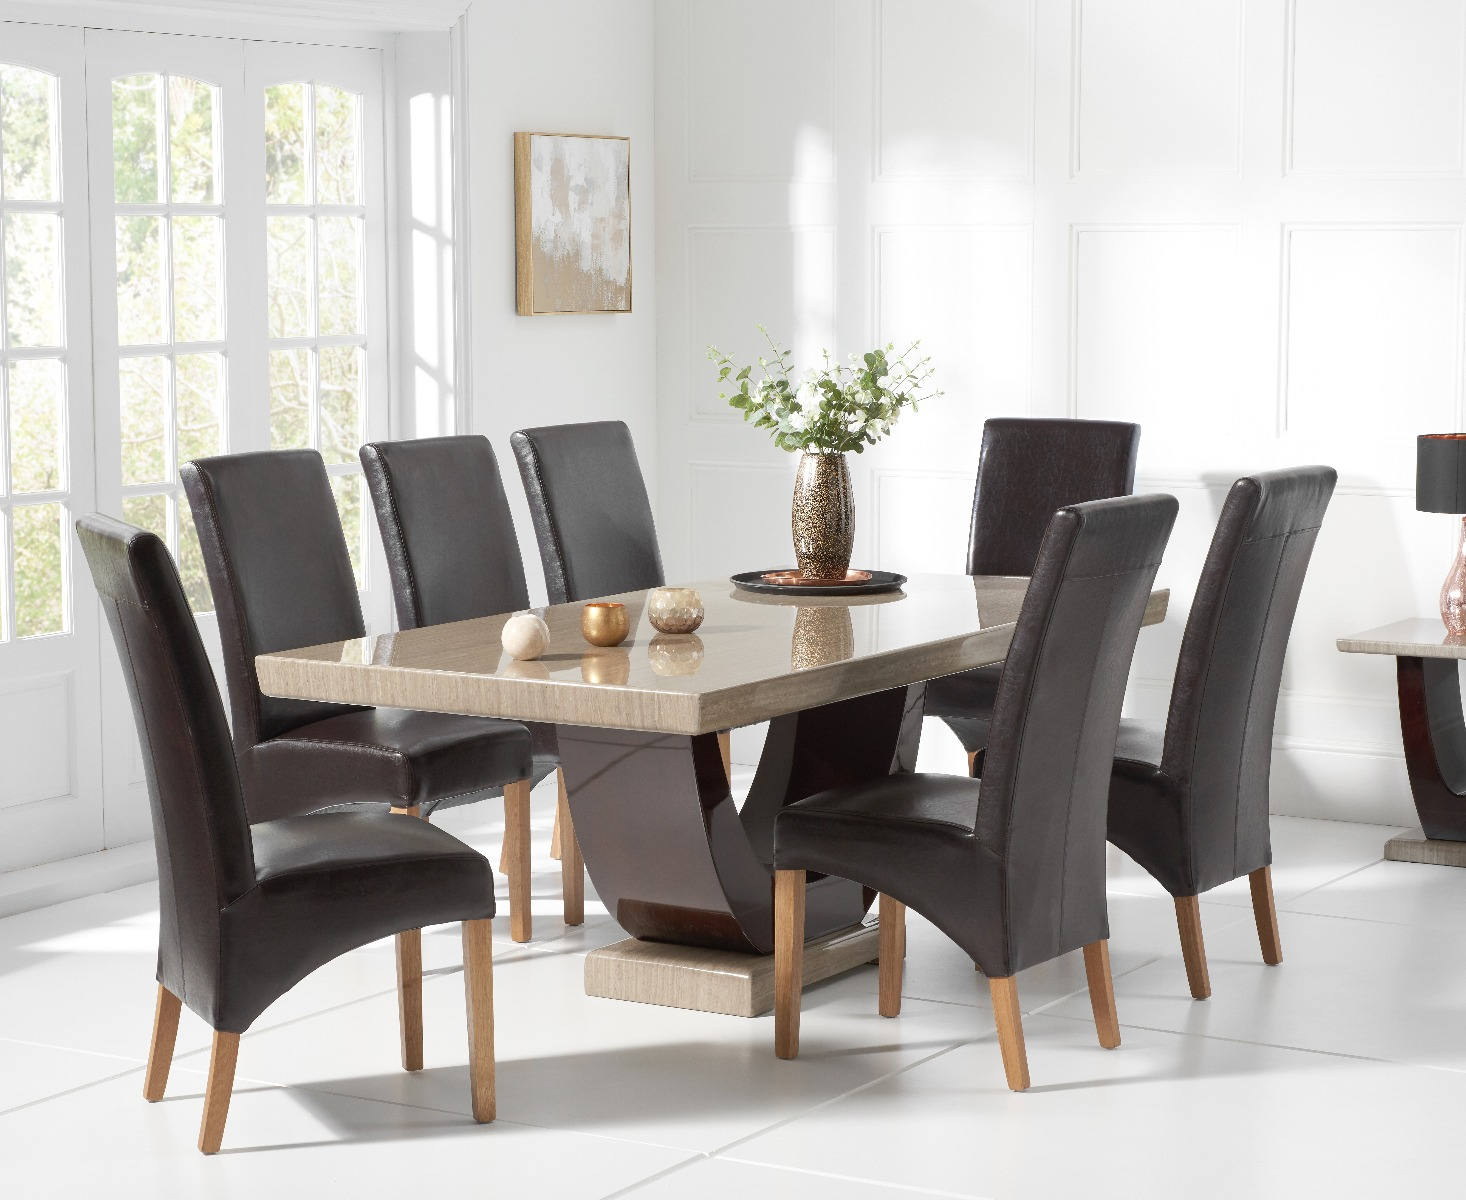 Raphael 200cm Brown Pedestal Marble Dining Table With Cannes Chairs